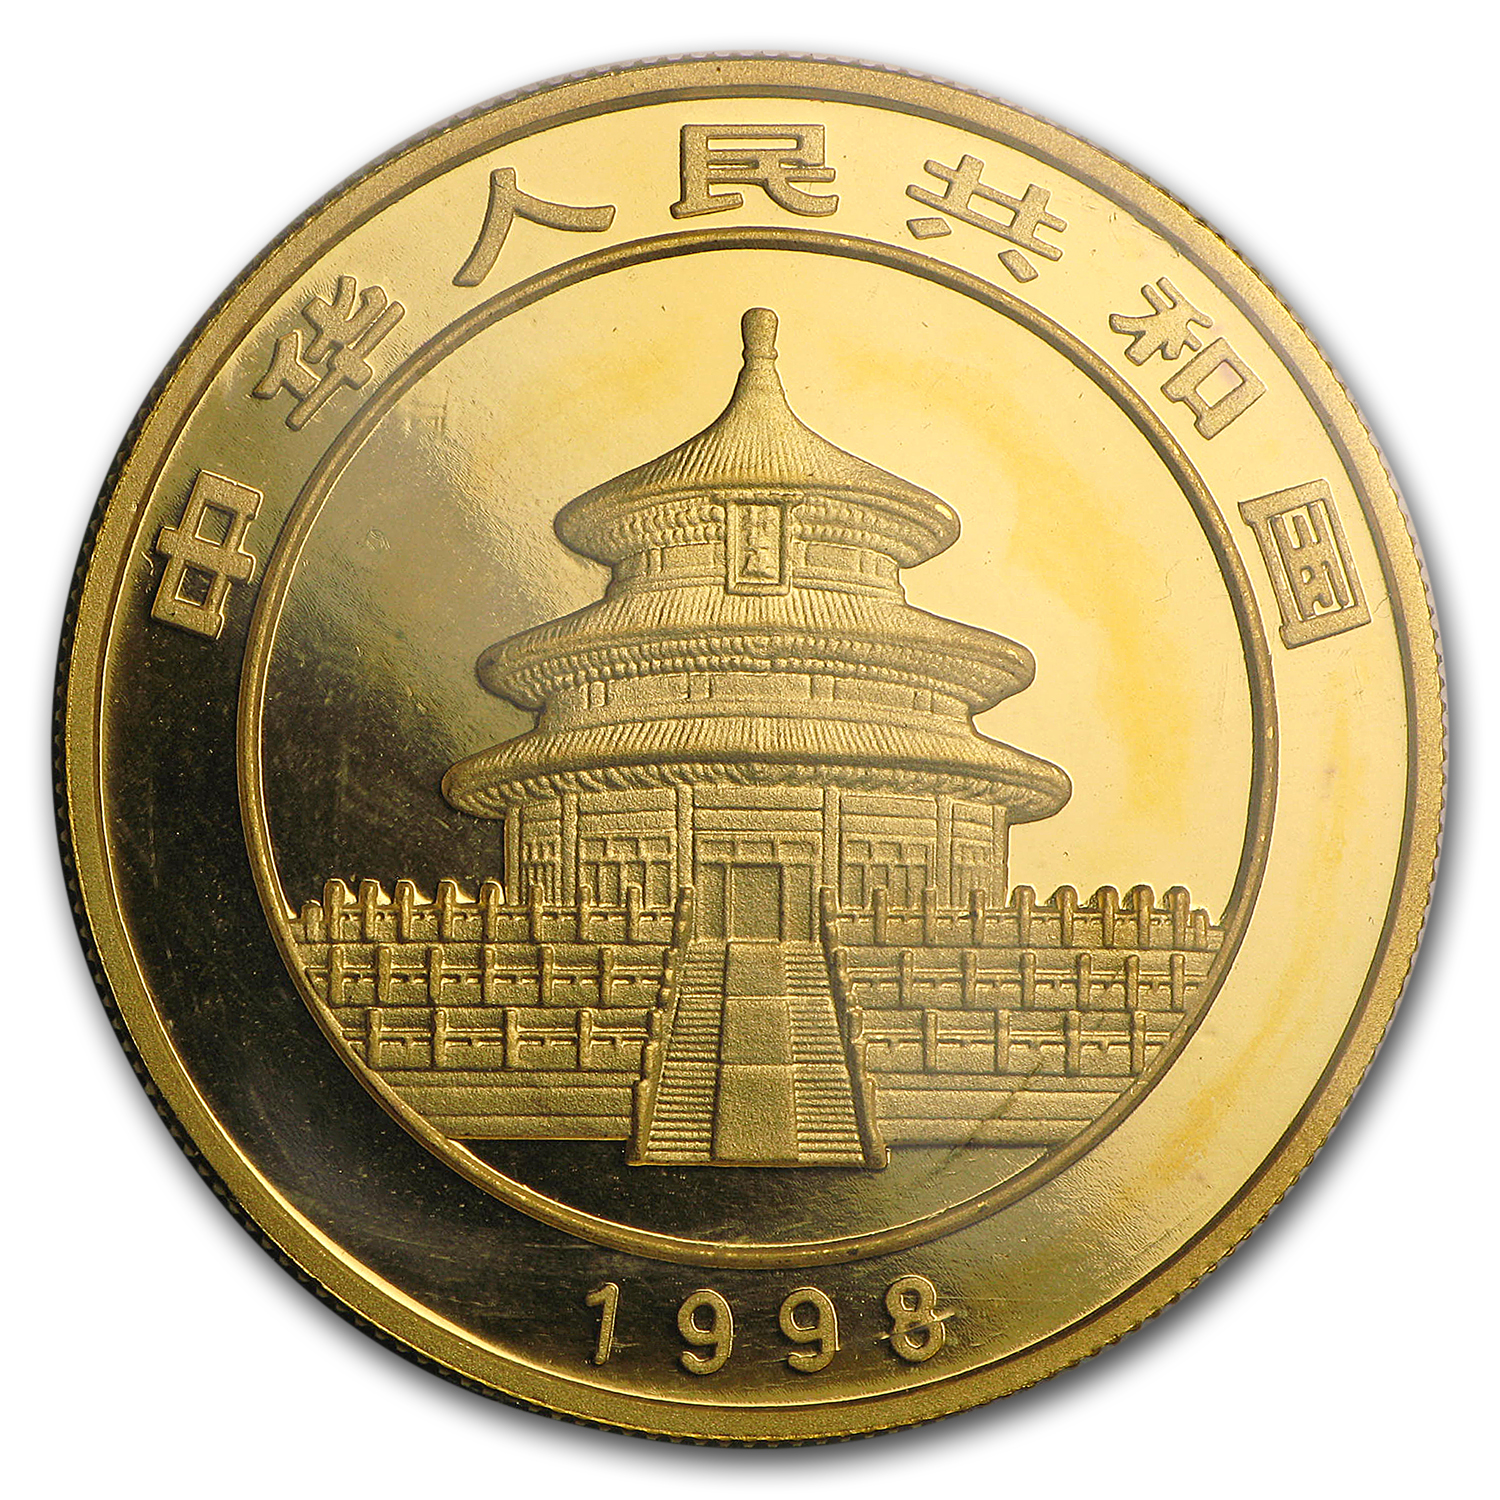 1998 China 1 oz Gold Panda Large Date BU (Sealed)